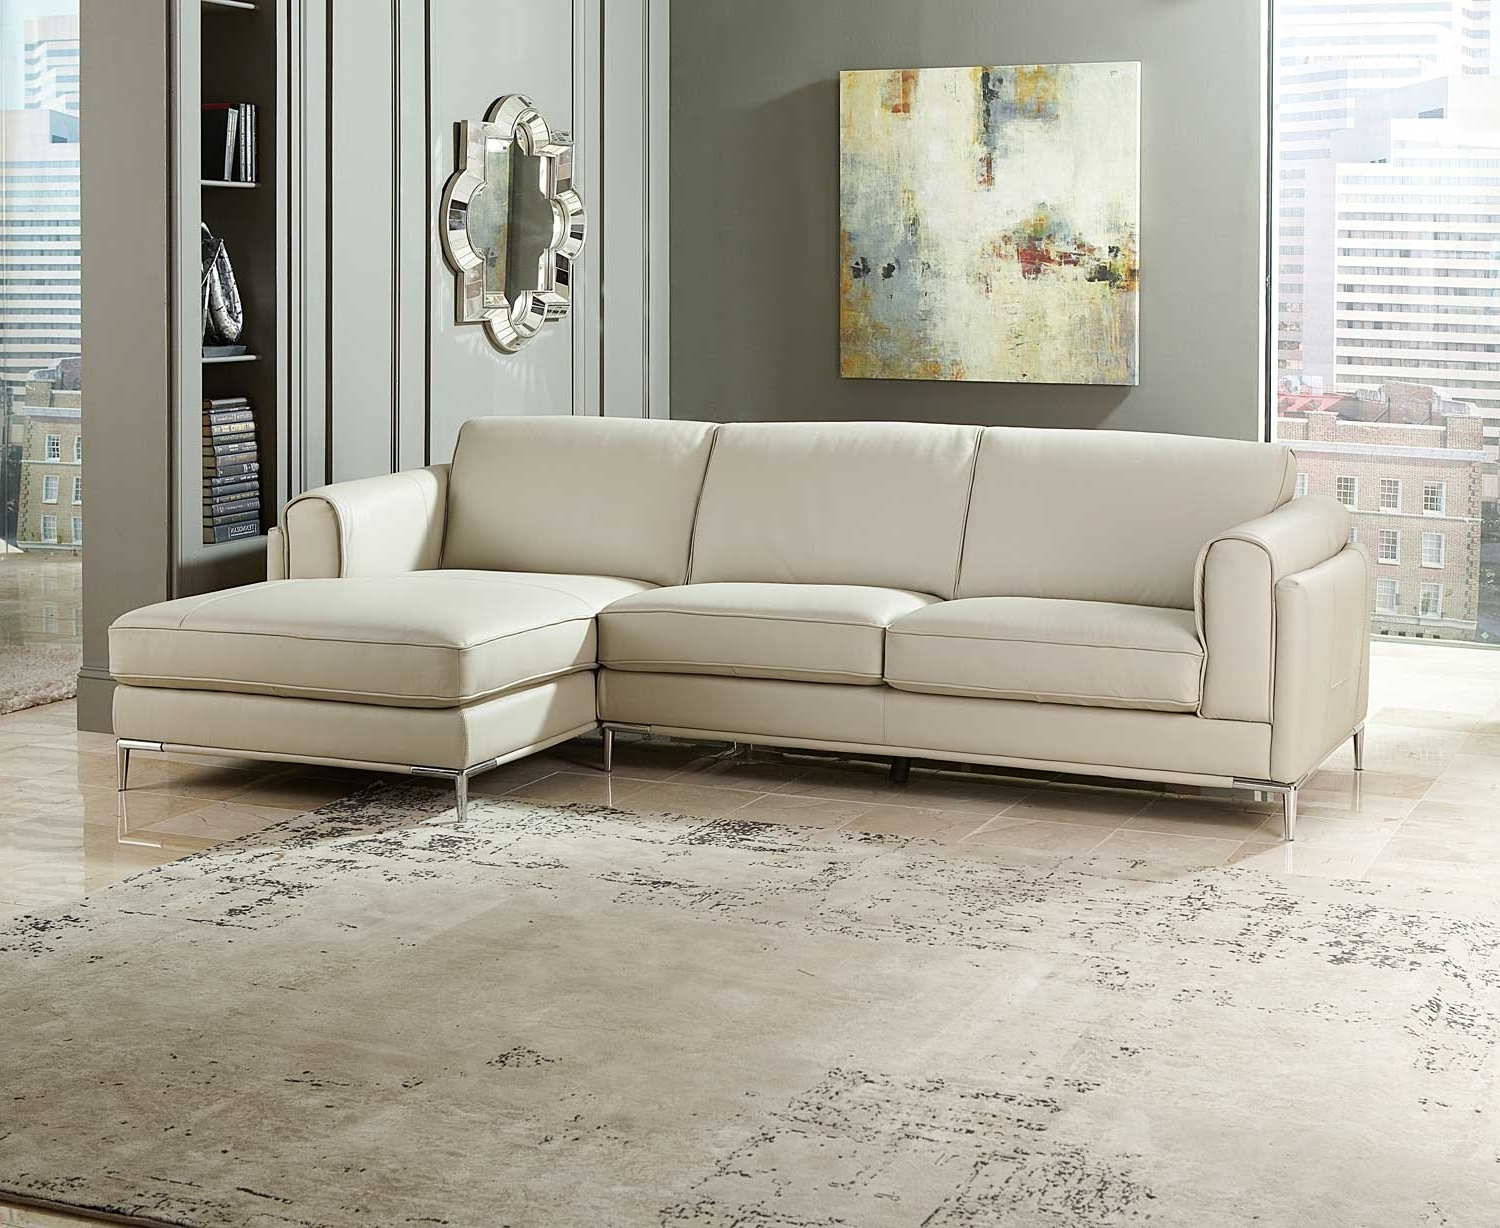 Beige Sectional Sofas With Regard To Most Recently Released Homelegance Hugo Sectional Sofa – Beige Top Grain Leather & Split (View 6 of 15)